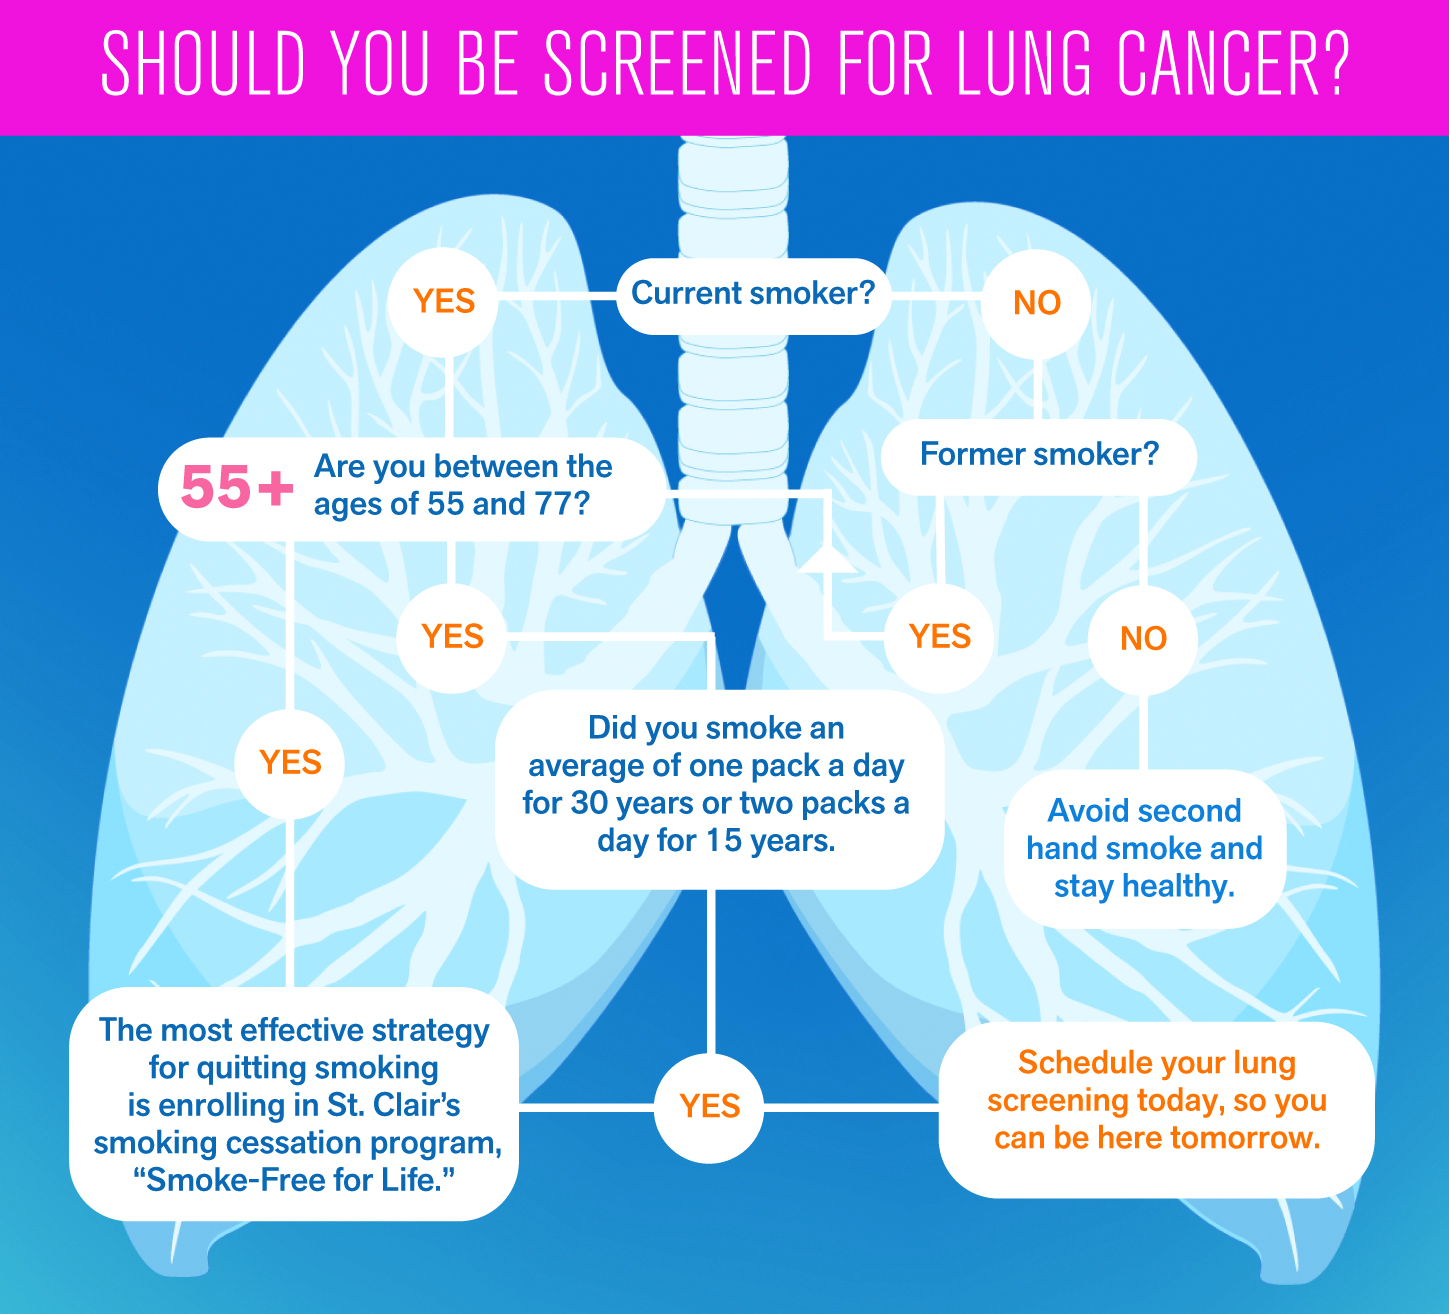 New healthcare screenings such as those at St. Clair Hospital can save patients from lung cancer early.